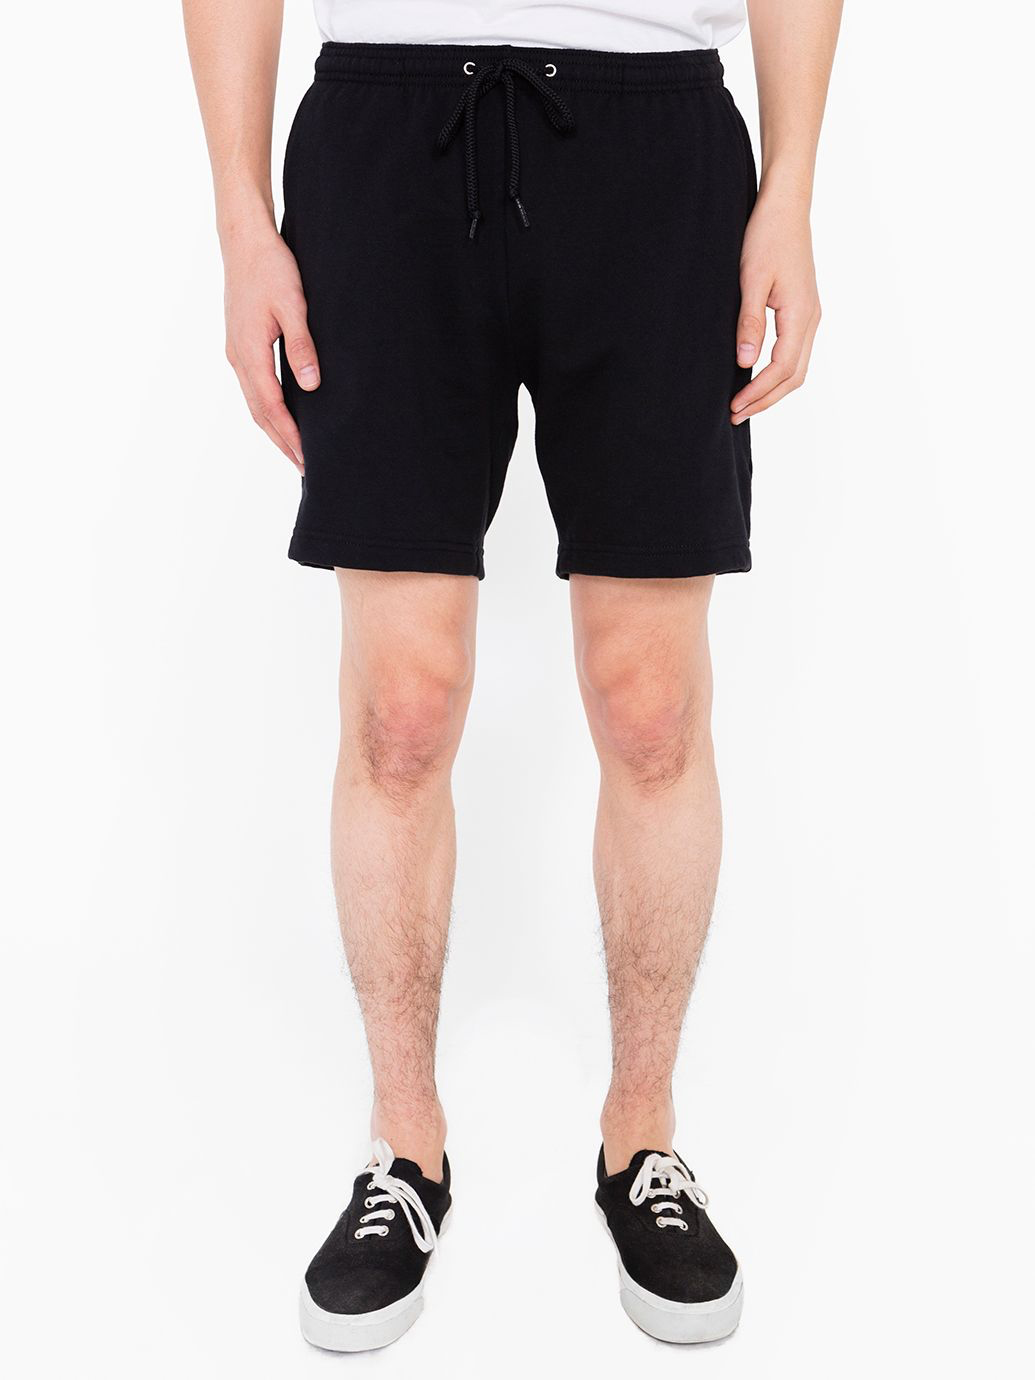 CALIFORNIA FLEECE GYM SHORT (BLACK)